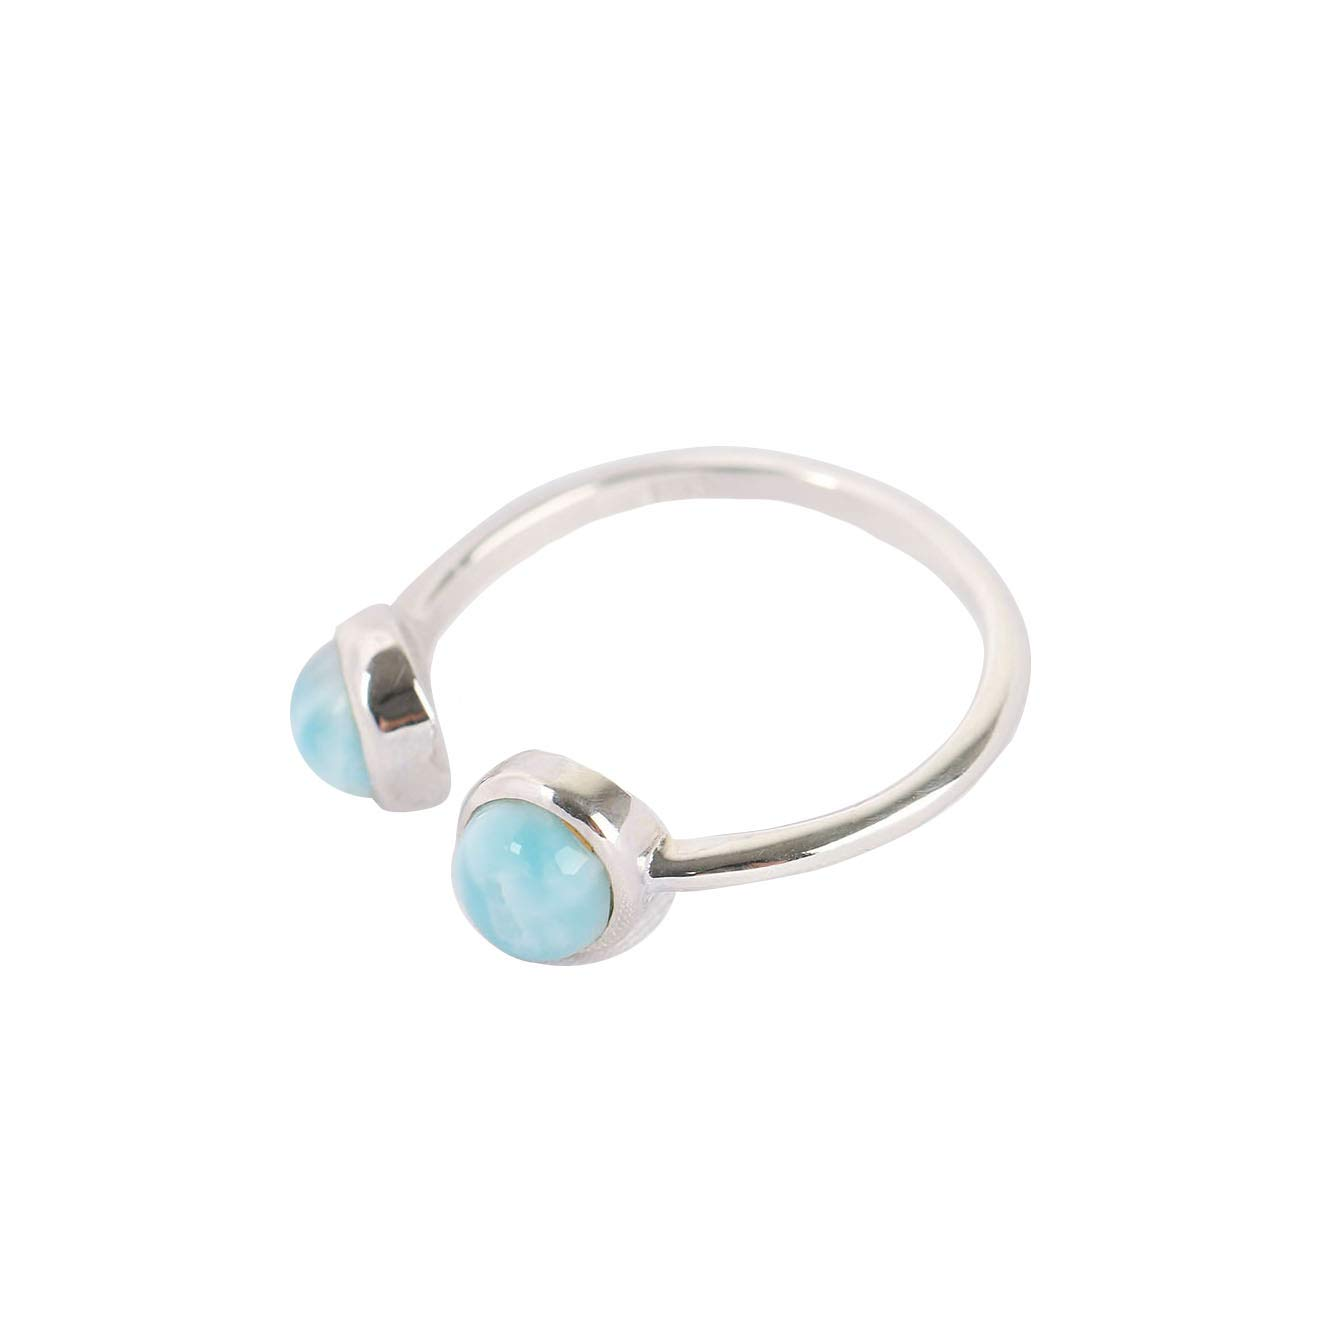 Tuoke Chic Open Ring 925 Sterling Silver Larimar Jewelry Adjustable Fashion Blue Stone Ring for Women and Girls, Design Home Casual Wear